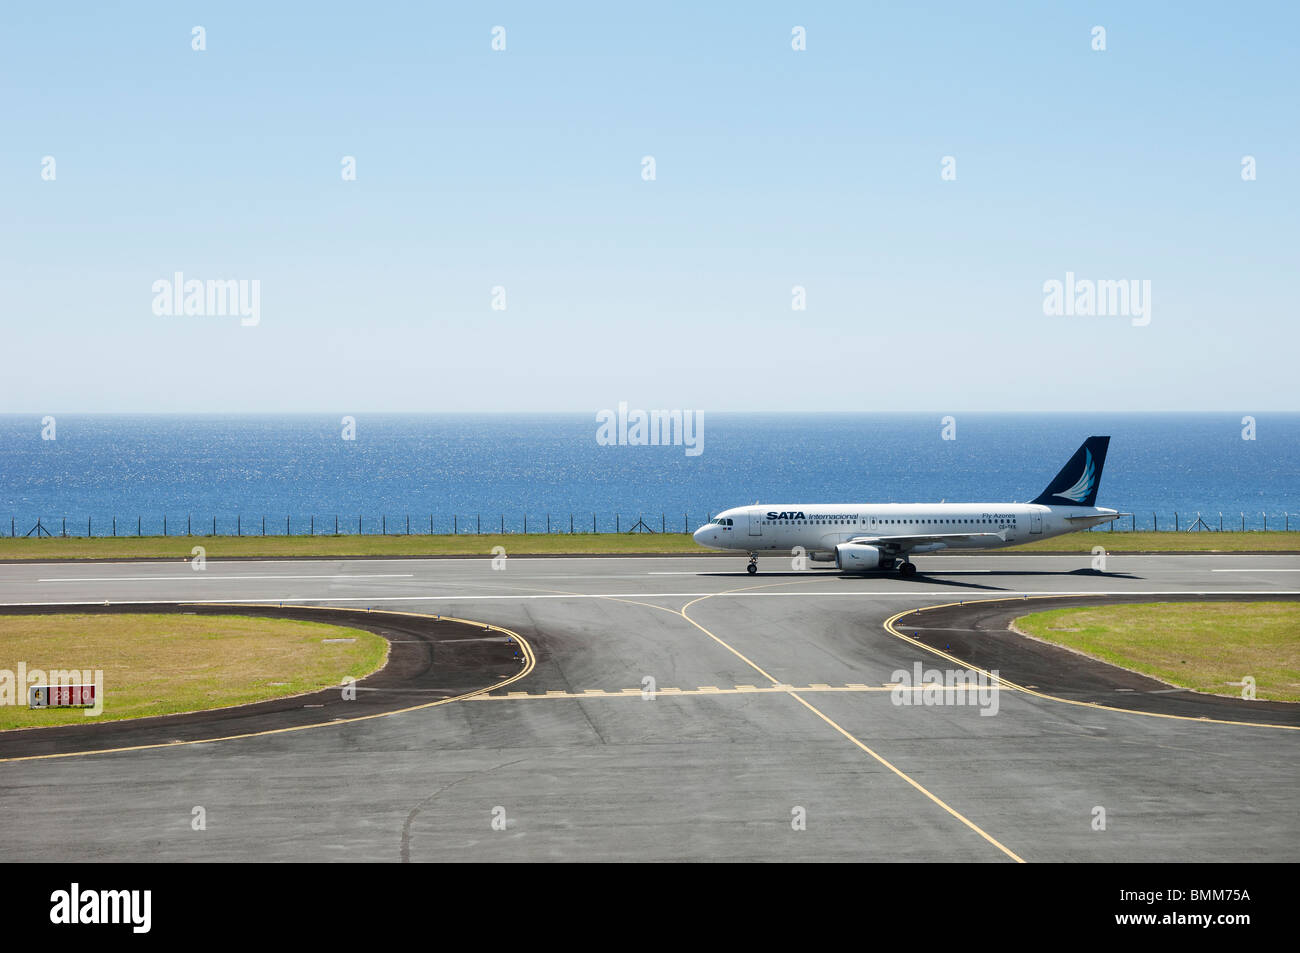 Jetliner of Sata International ready for takeoff in Faial airport, Azores - Stock Image